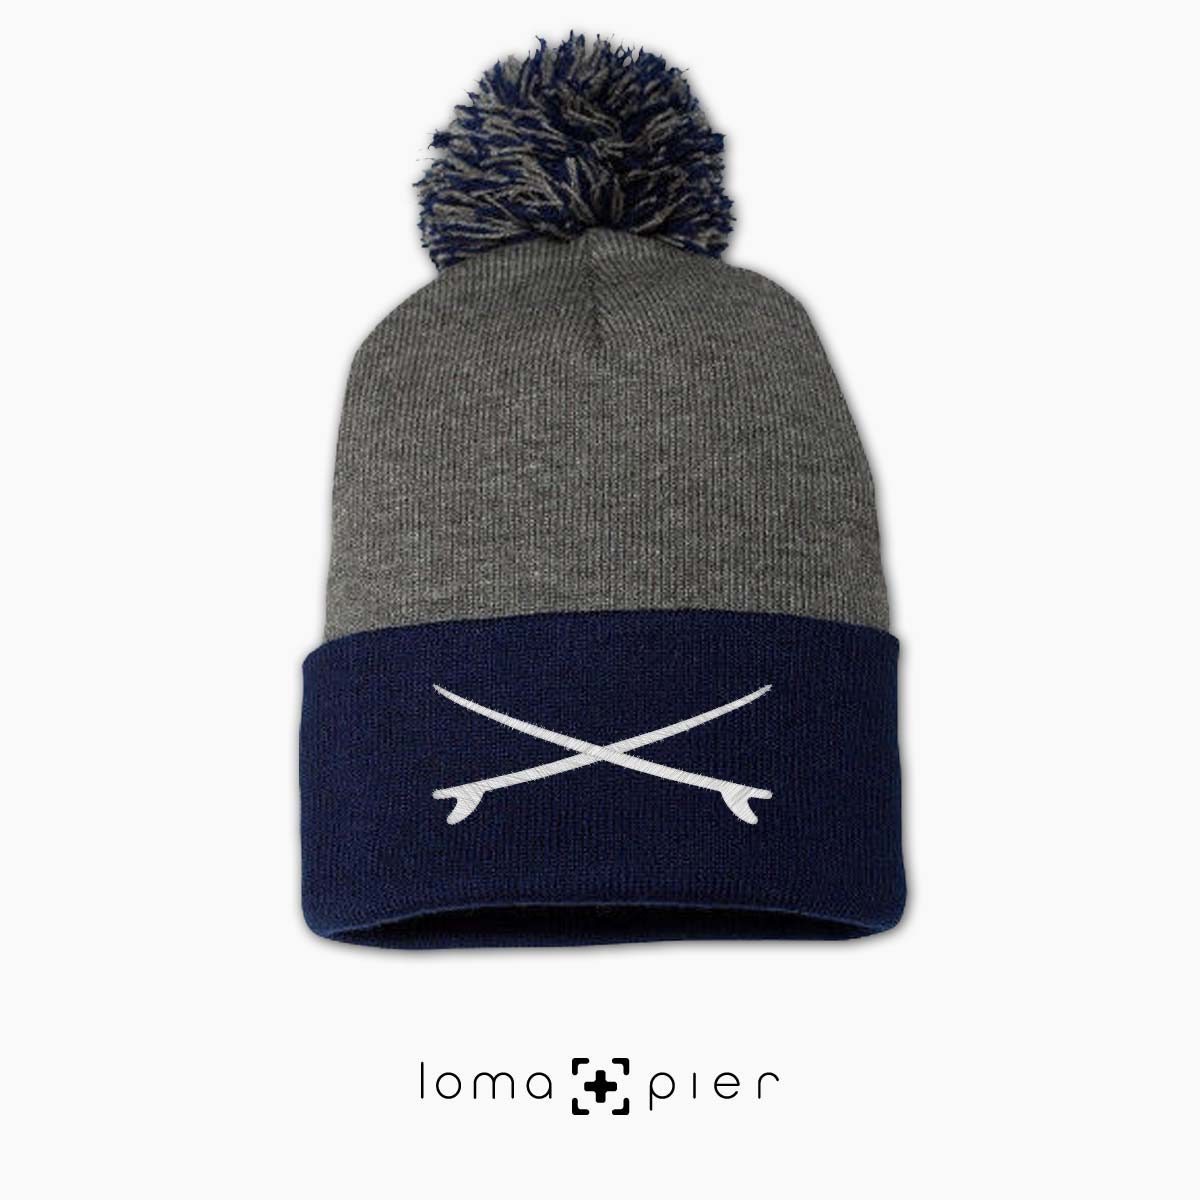 X MARKS THE SURF icon embroidered on a grey navy pom pom beanie by loma+pier beanie store